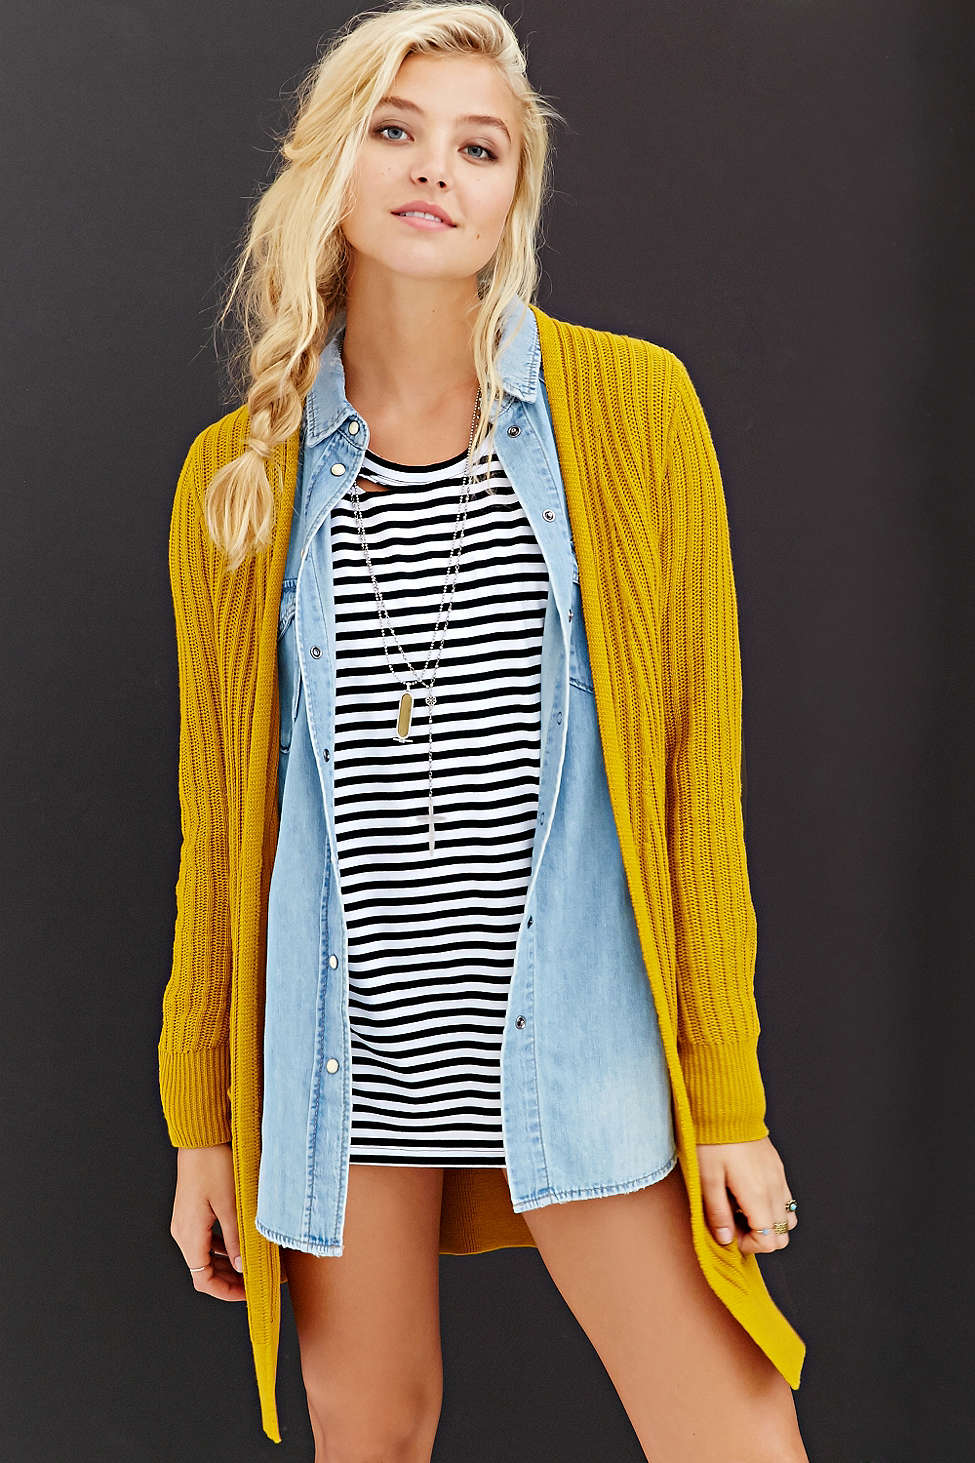 Urban Outfitters Springsummer Womens Sweaters Emily Blickle